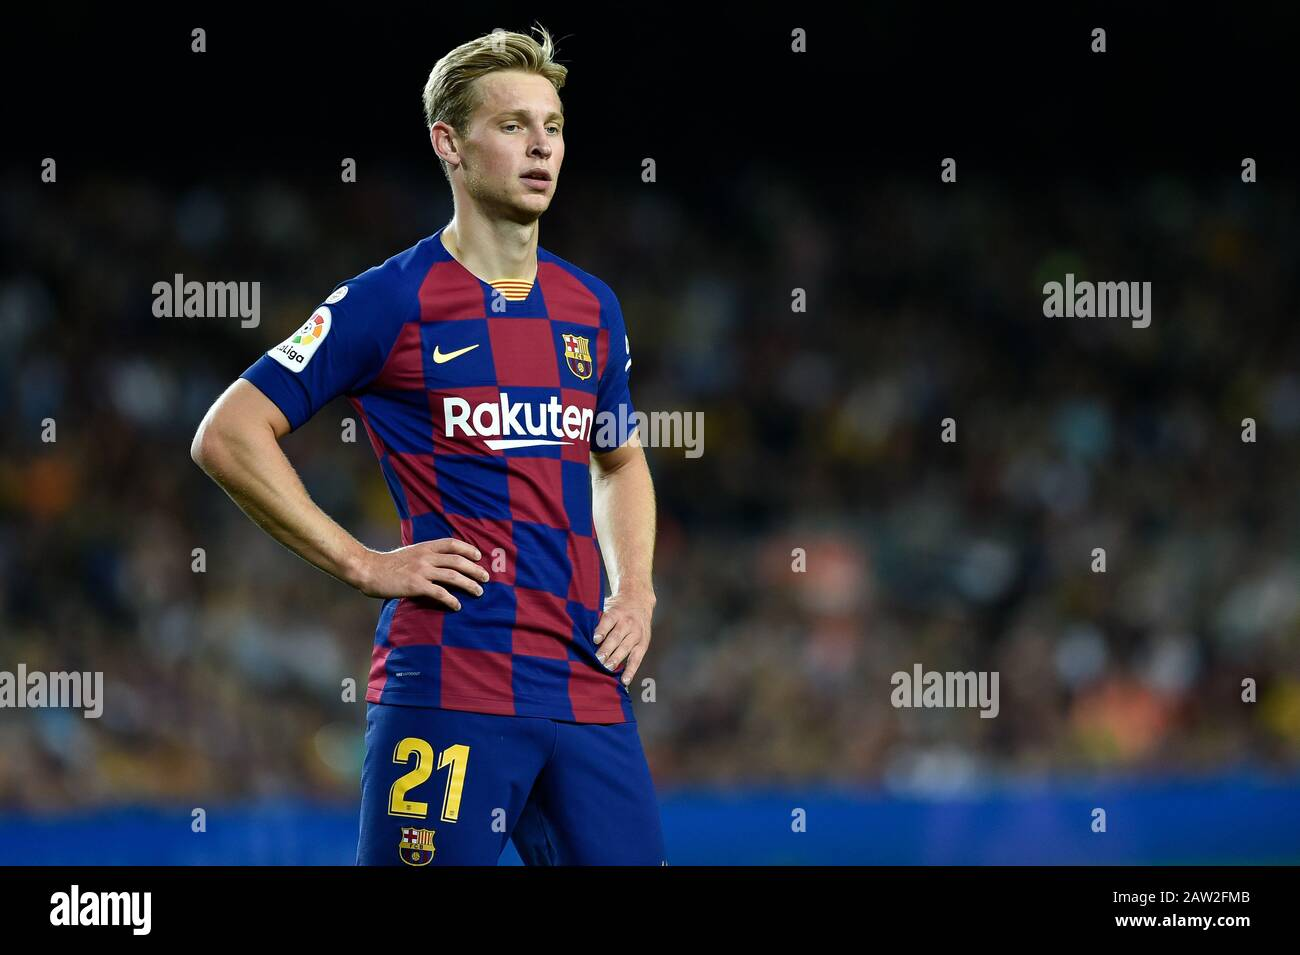 Barcelona Spain October 06 Frenkie De Jong Of Fc Barcelona During The La Liga Match Between Fc Barcelona And Sevilla Fc At Camp Nou On October 06 Stock Photo Alamy